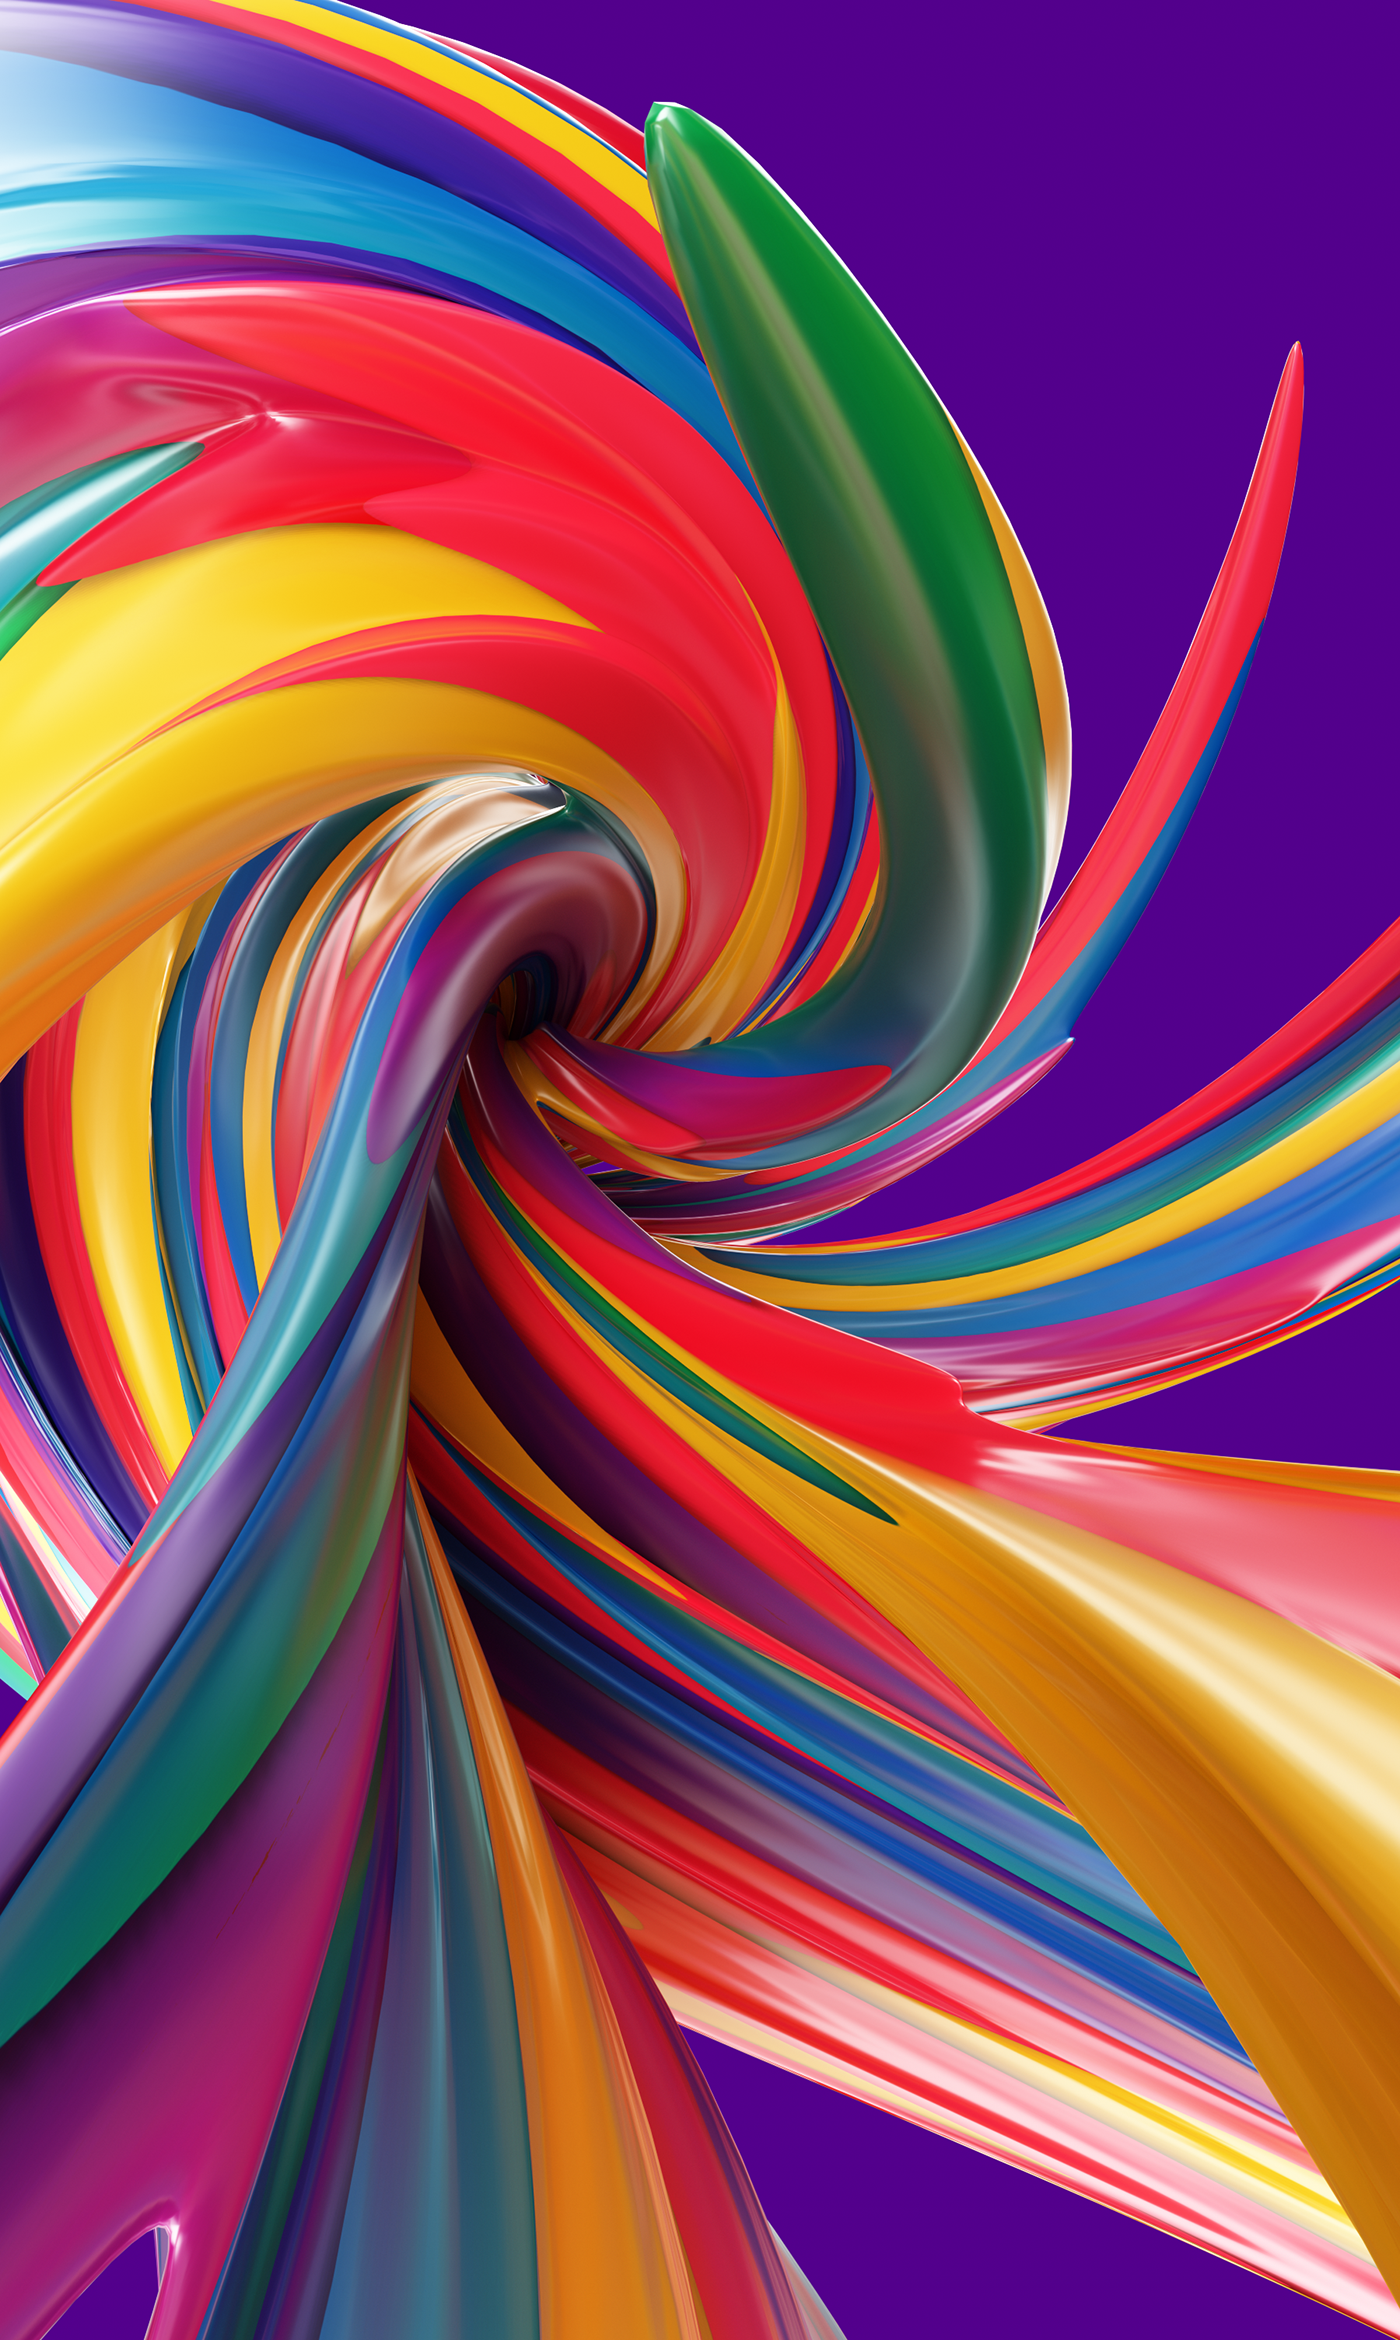 Curved Lines Series 1 0 On Behance Colorful Wallpaper Abstract Art Wallpaper Colourful Wallpaper Iphone